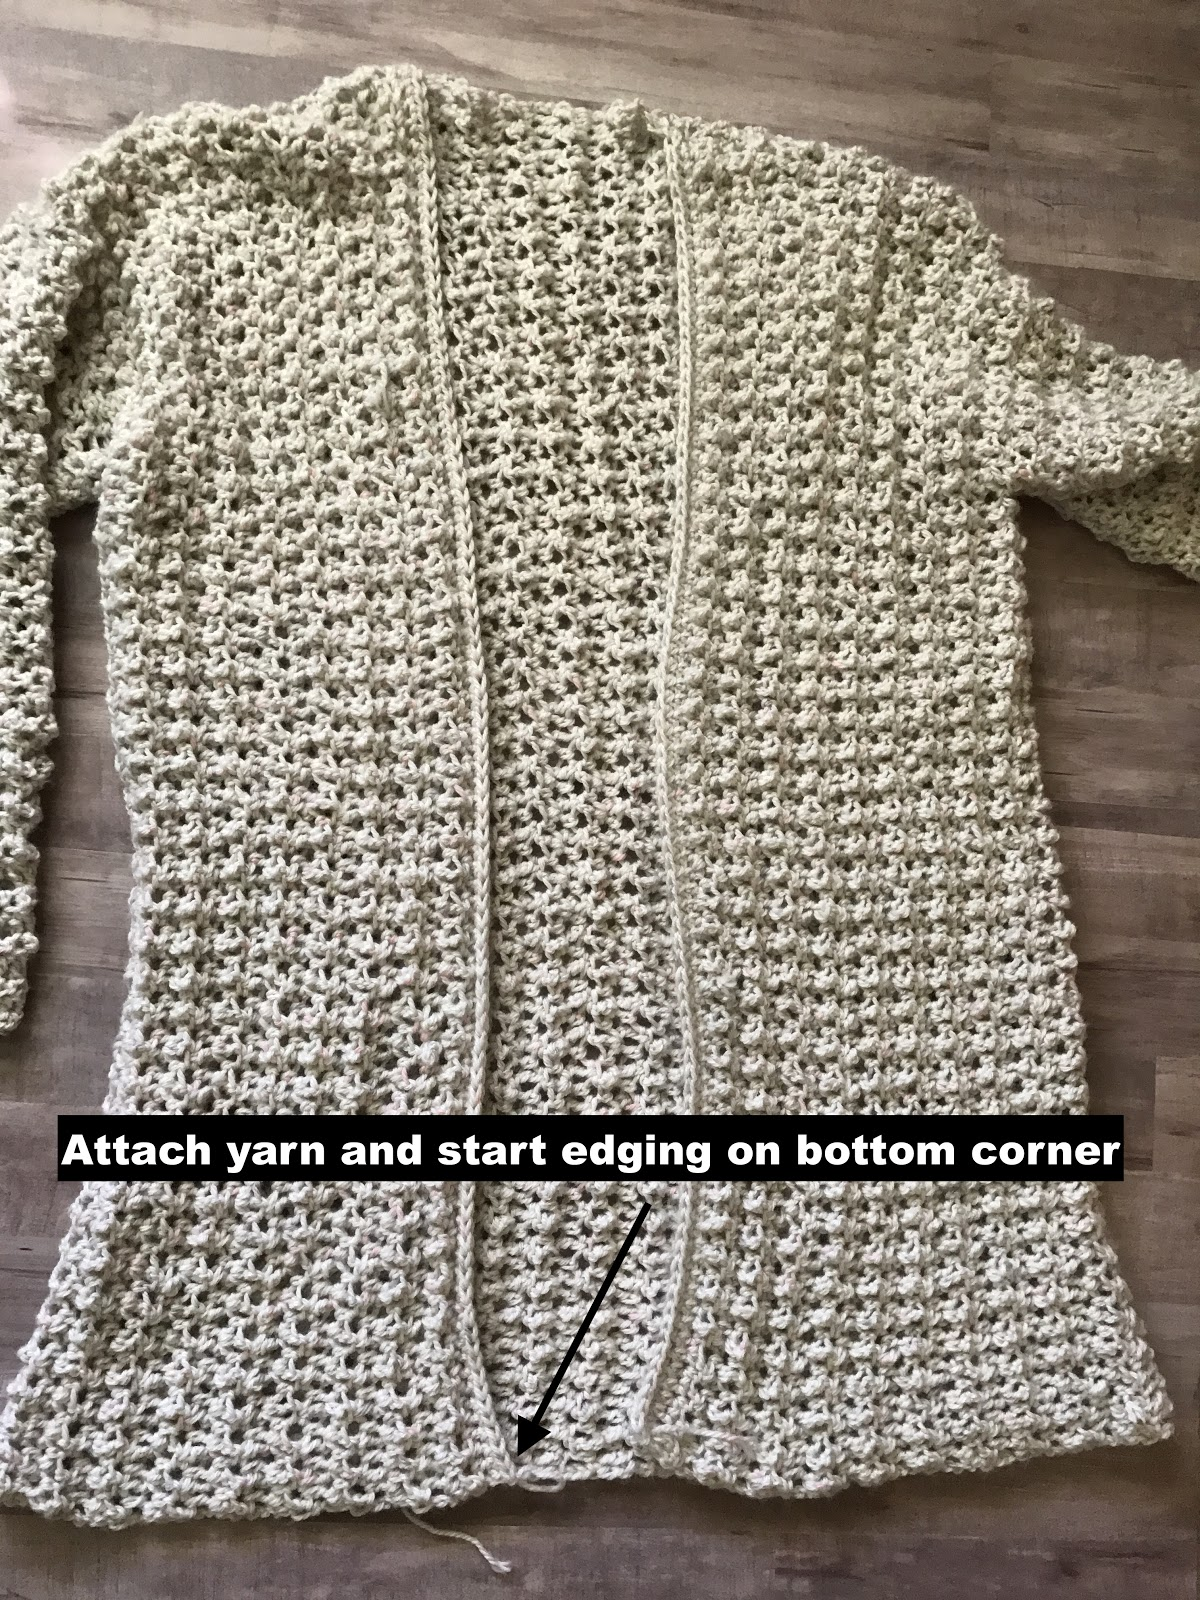 Comfy cozy oversized crochet cardigan pattern poppy cardigan edging attach yarn to bottom of cardigan ch 2 hdc up the side around the neckline and down the other side of the cardigan turn bankloansurffo Choice Image